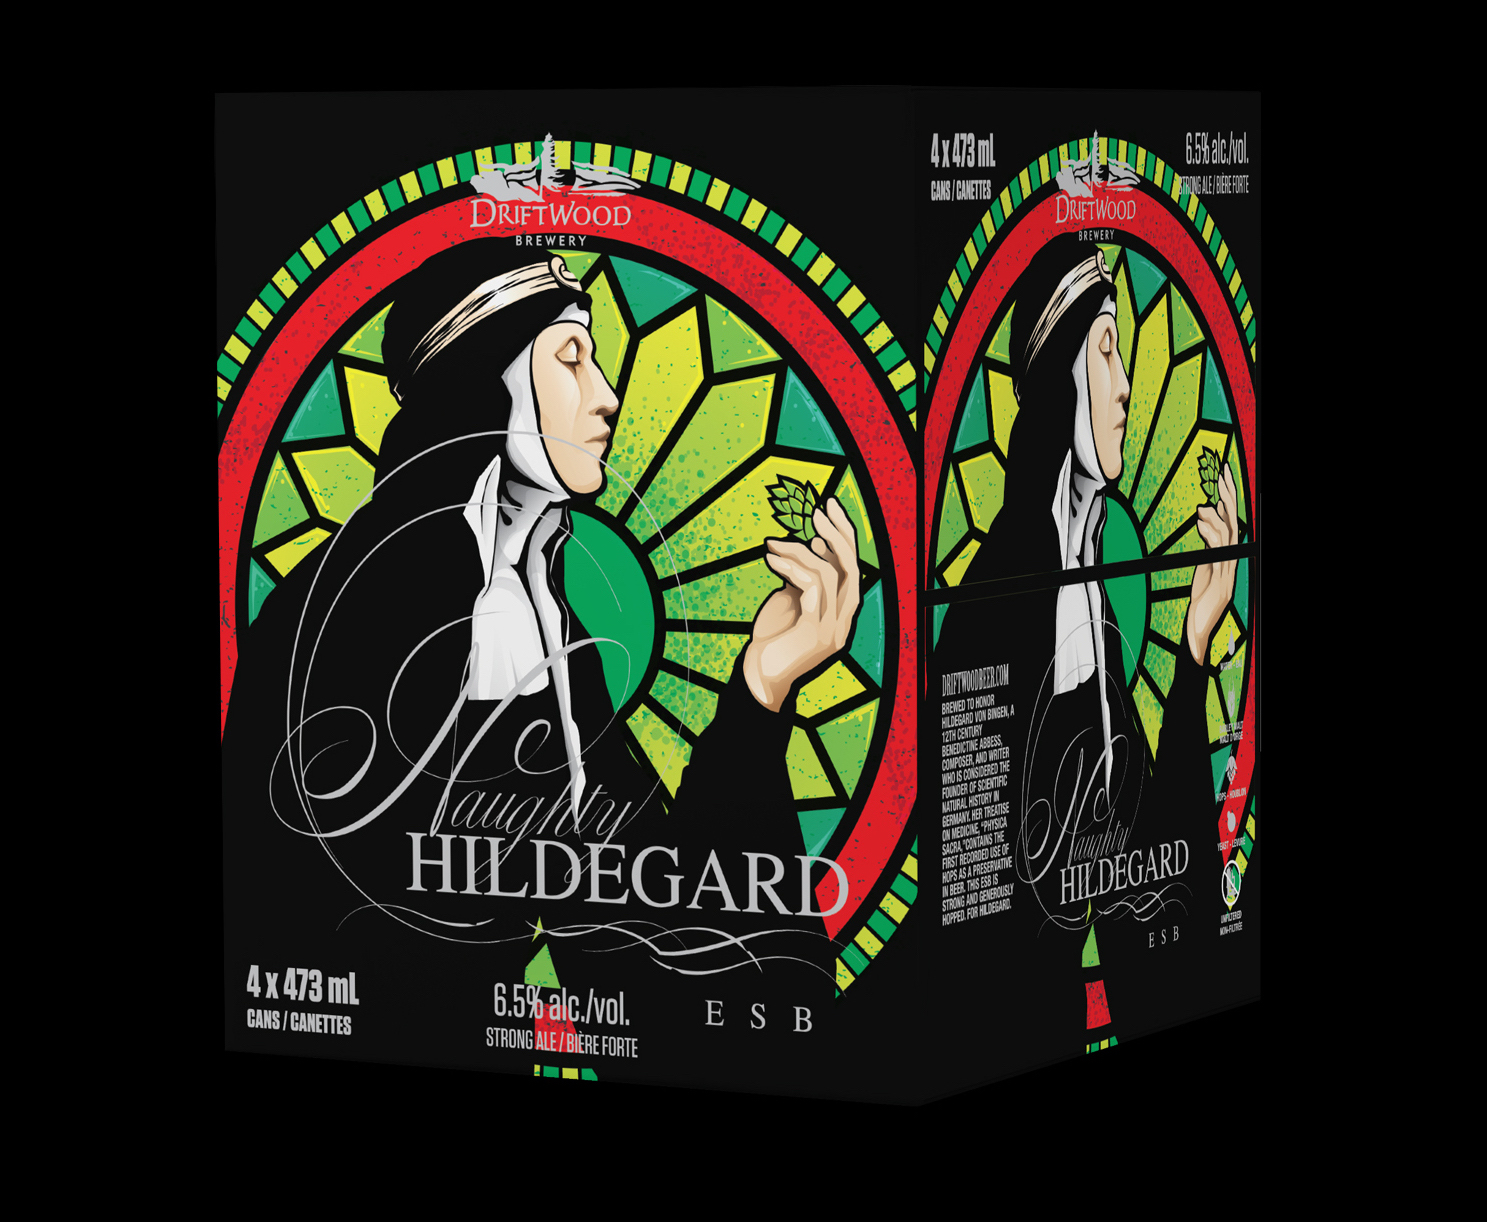 Box Design for Driftwood Brewery's Naughty Hildegard